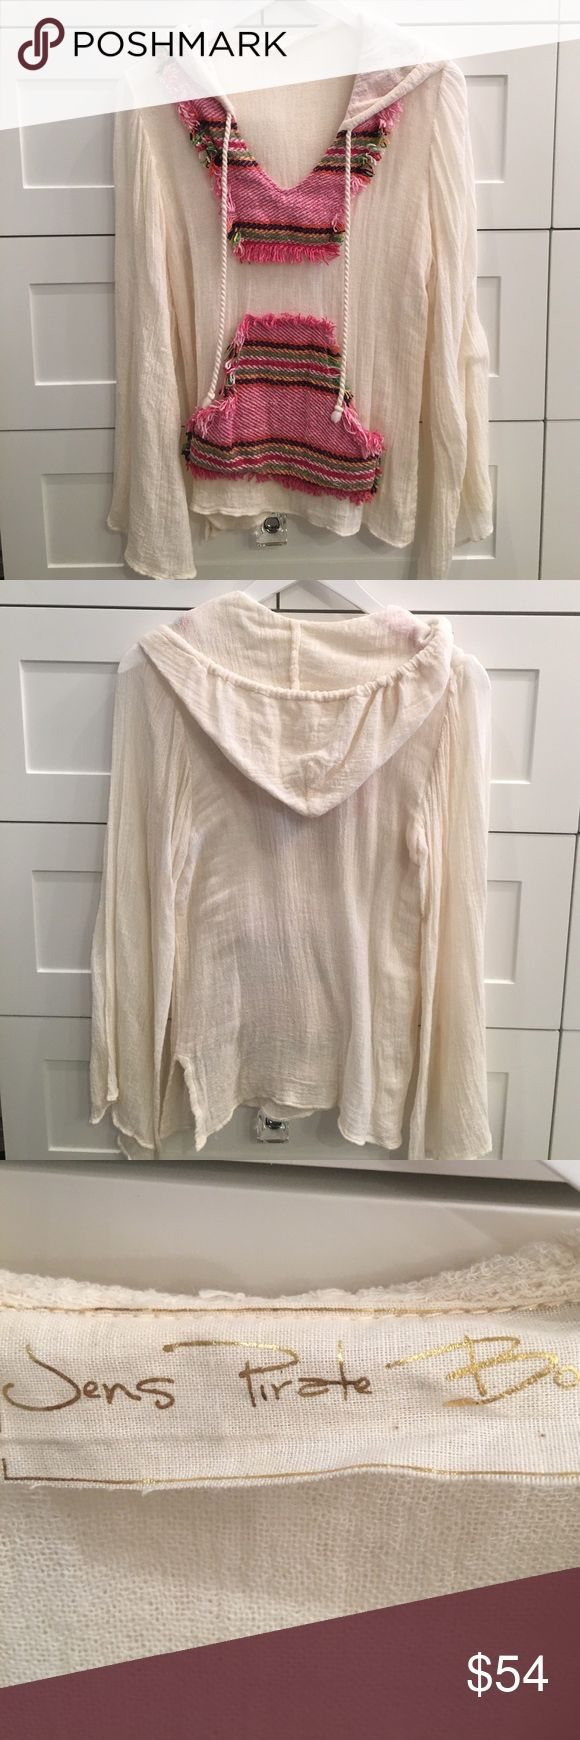 Jens Pirate Booty Poncho Cream colored gauze material with pink multi colored threading detail. Worn and washed only once. Excellent condition. The sleeves extend into a flared shape and the overall look is casual and loose fitting. Jen's Pirate Booty Tops Sweatshirts & Hoodies